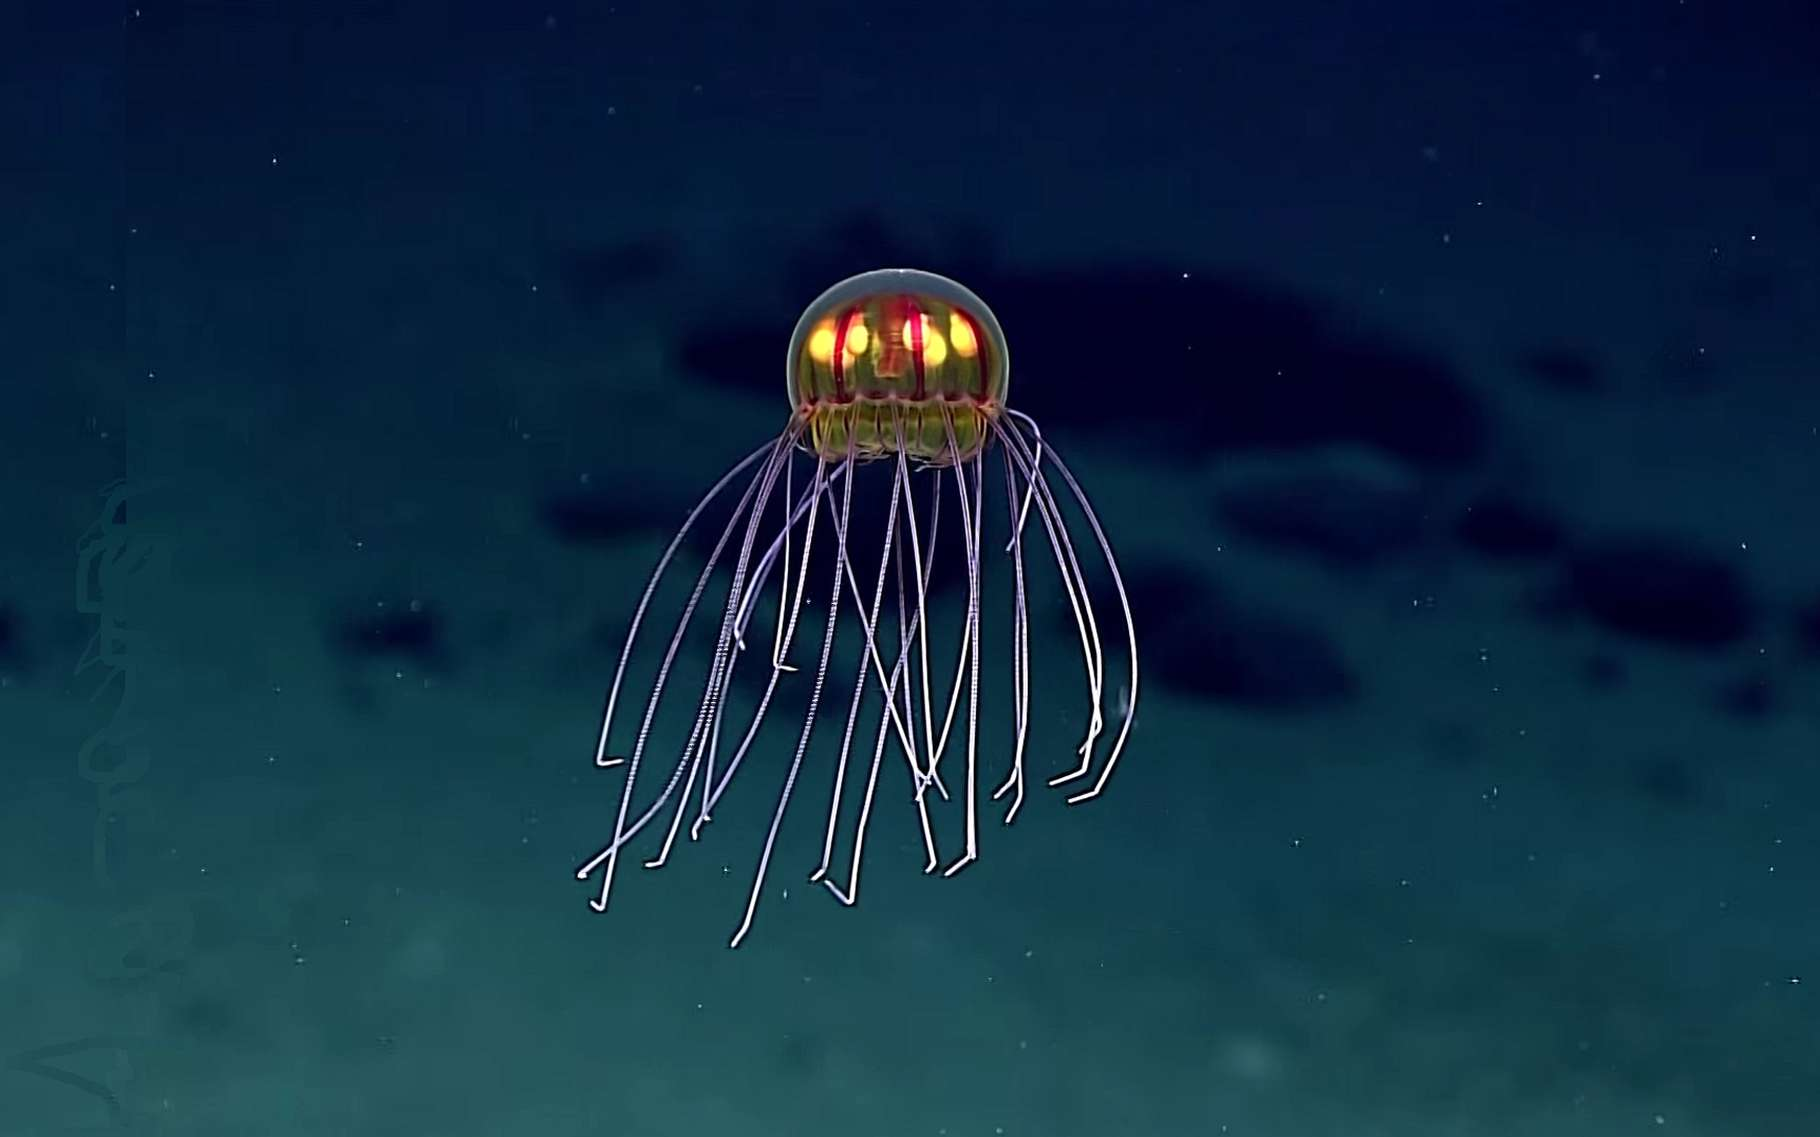 Une magnifique méduse surprise par près de 4.000 m de fond grâce à un engin télécommandé depuis un navire. Ses organes émettent de la lumière et elle est probablement en train de chasser. © NOAA Office of Ocean Exploration and Research, 2016 Deepwater Exploration of the Marianas, YouTube